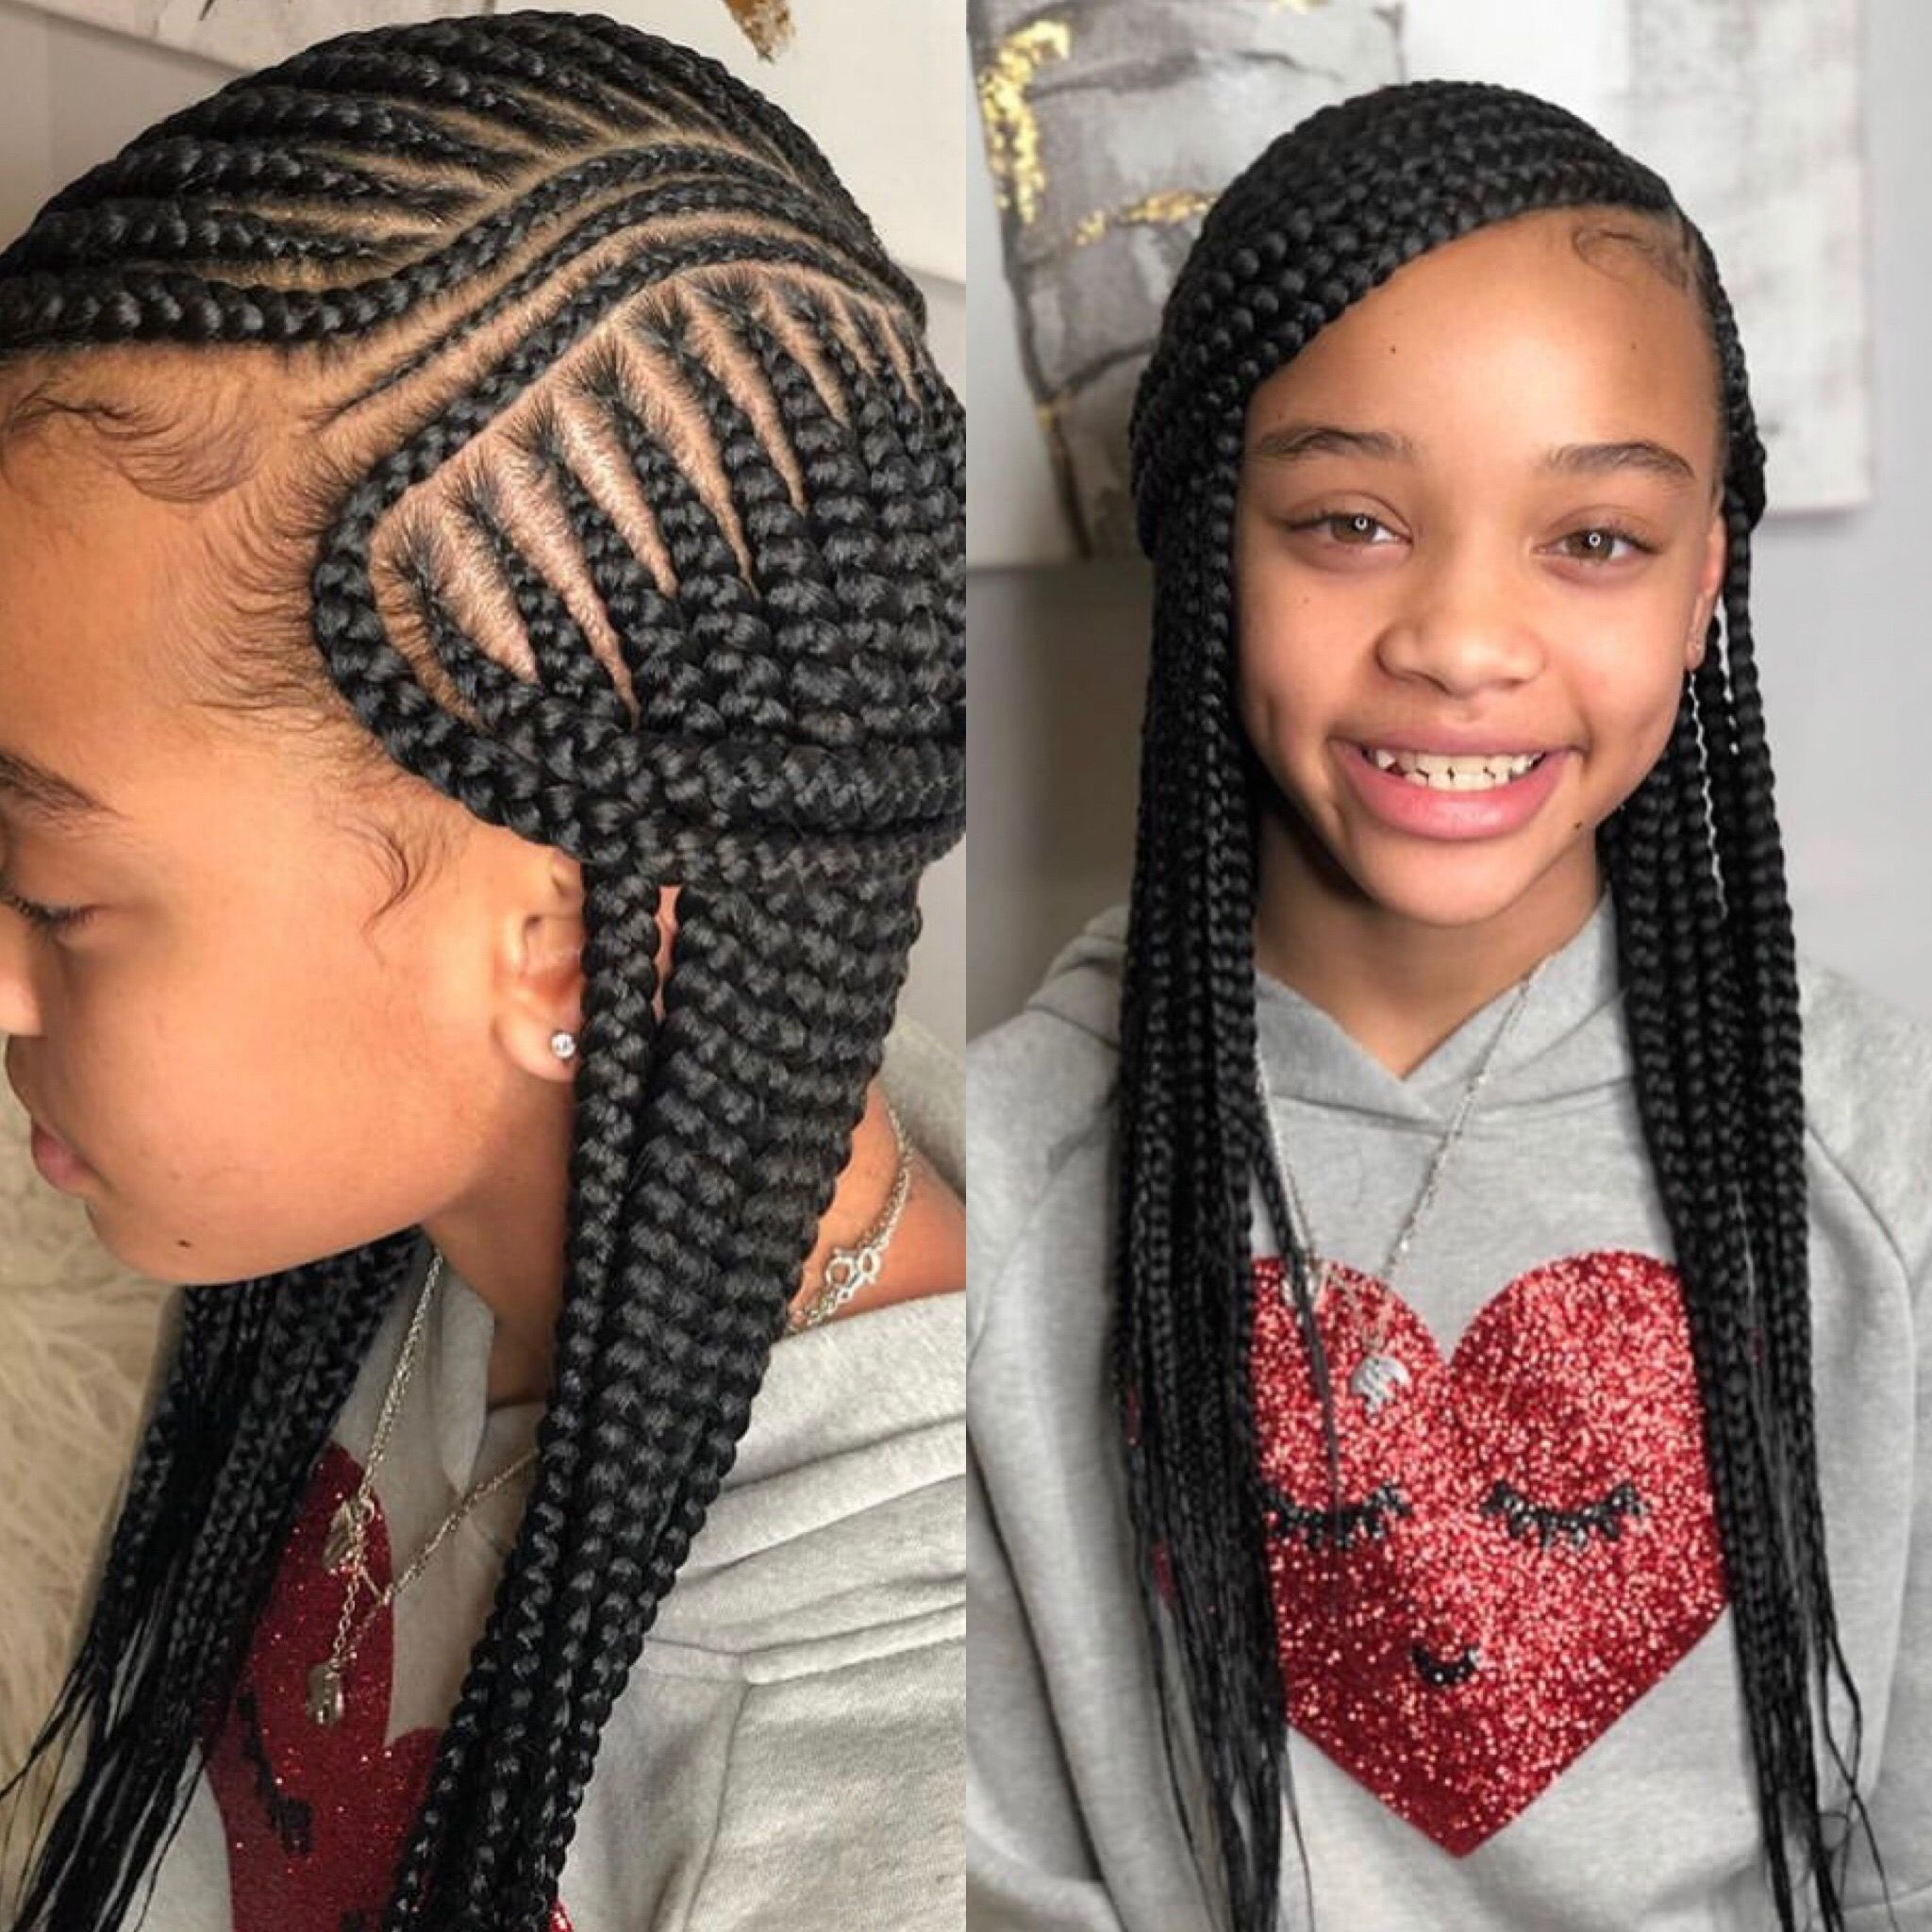 Natural Hair Style Black Kids Hairstyles Kids Braided Hairstyles Lil Girl Hairstyles